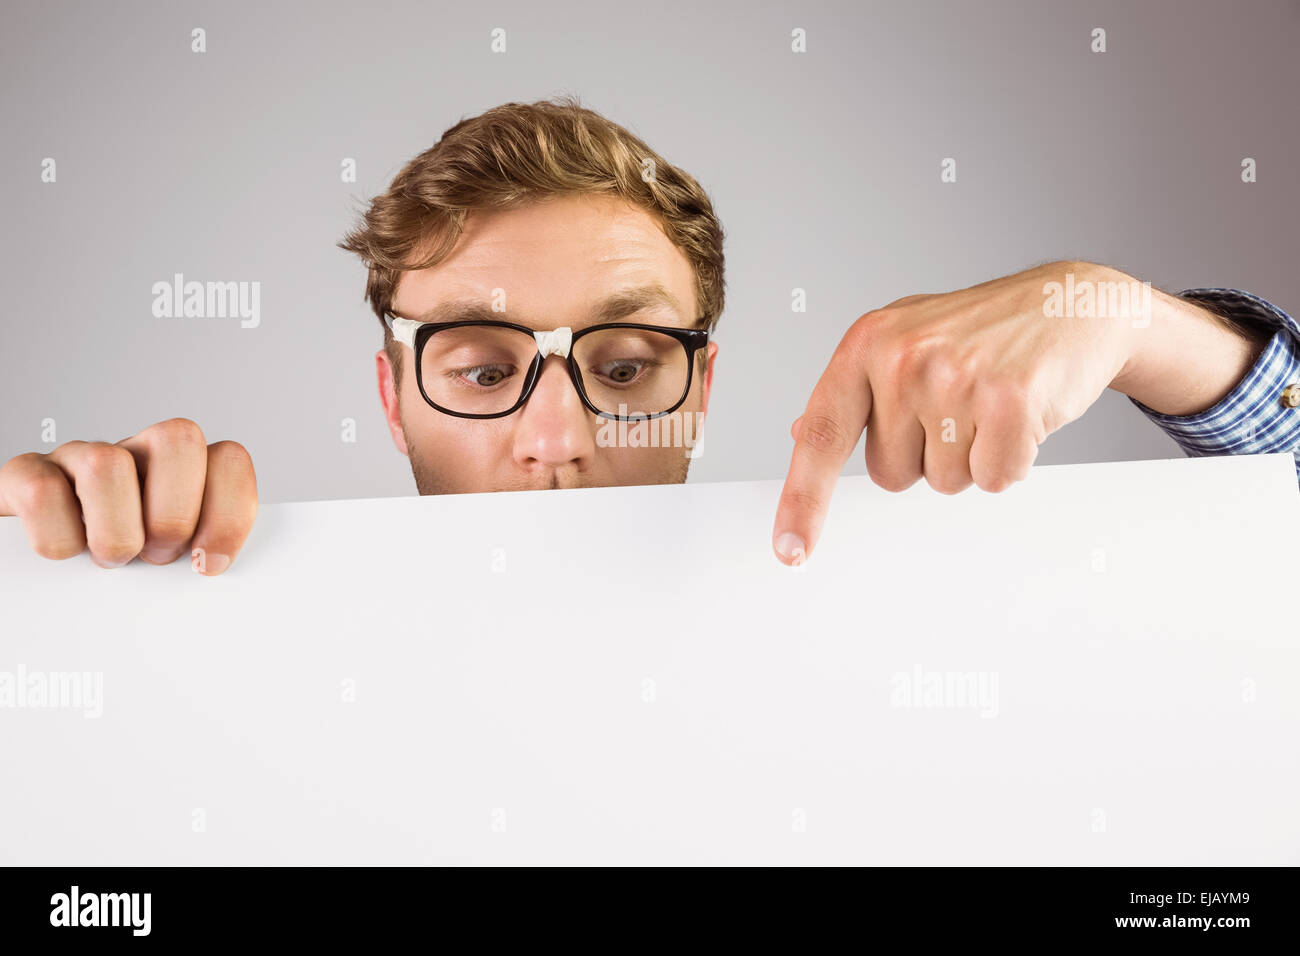 Geeky hipster showing a card - Stock Image